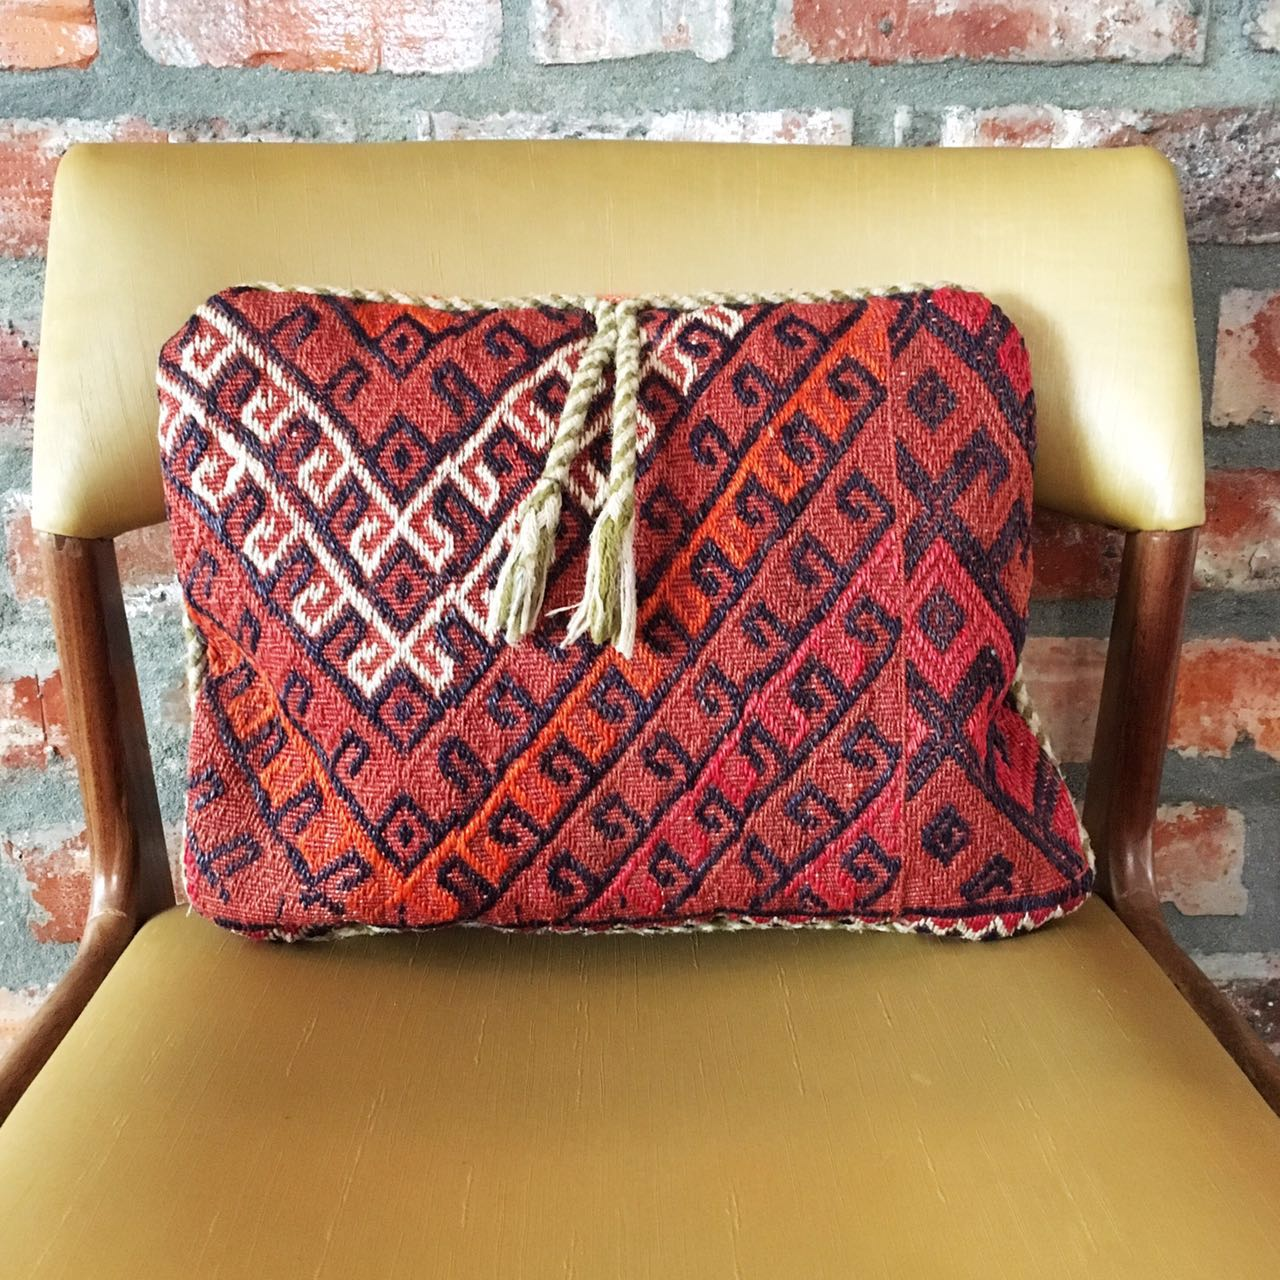 products thecitizenry multilumbar moroccan citizenry throw bed the pillow morocco kilim sold nahla out pillows